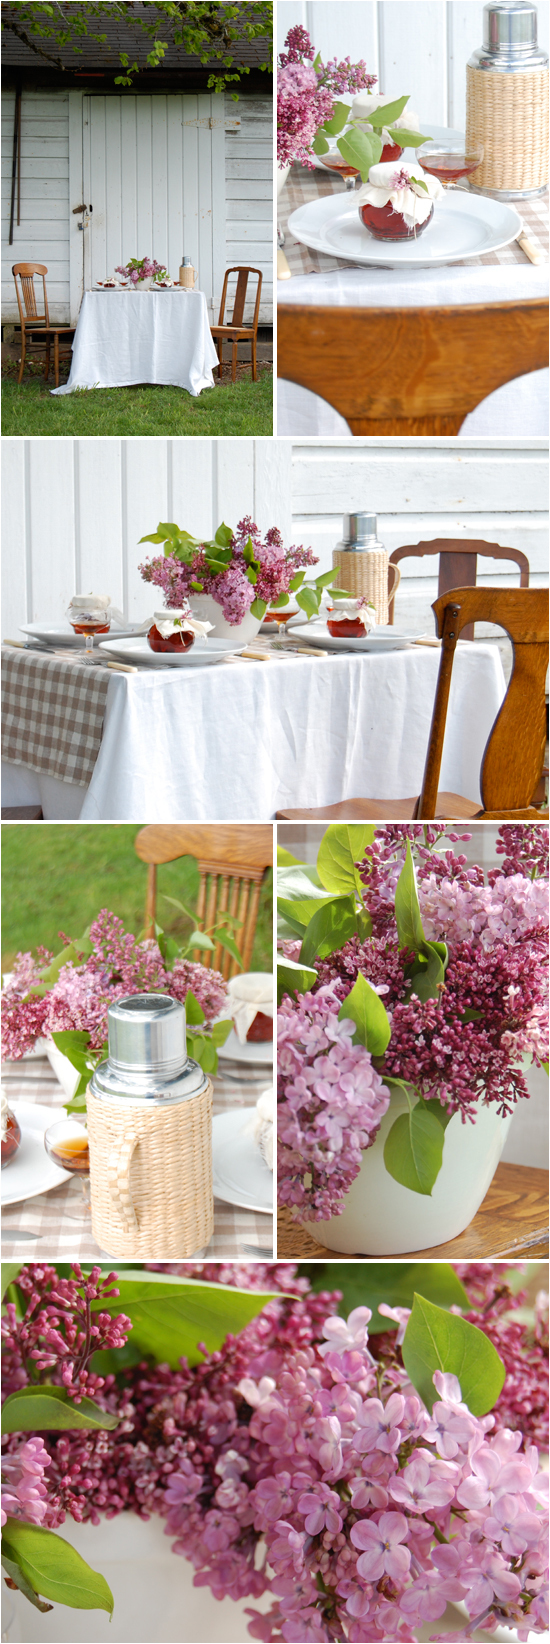 Diy decor lilac khaki project wedding Decoration kaki